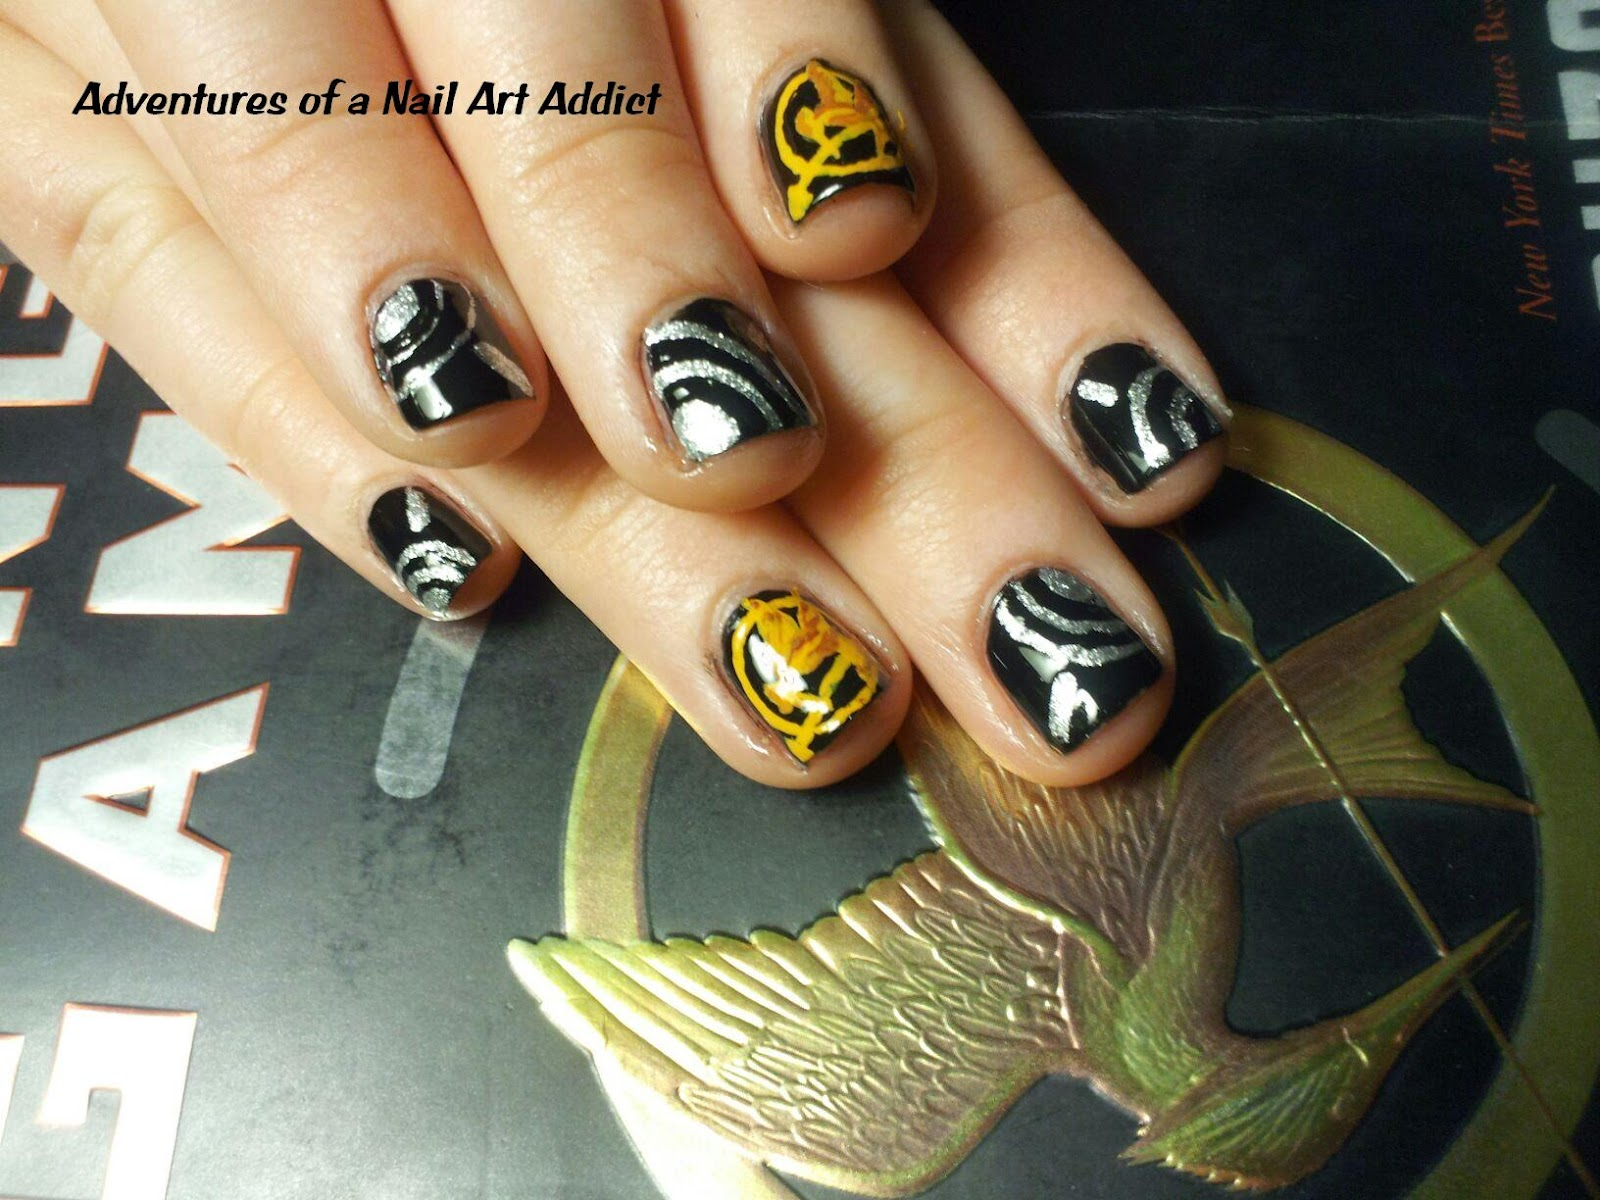 Adventures Of A Nail Art Addict August 2012